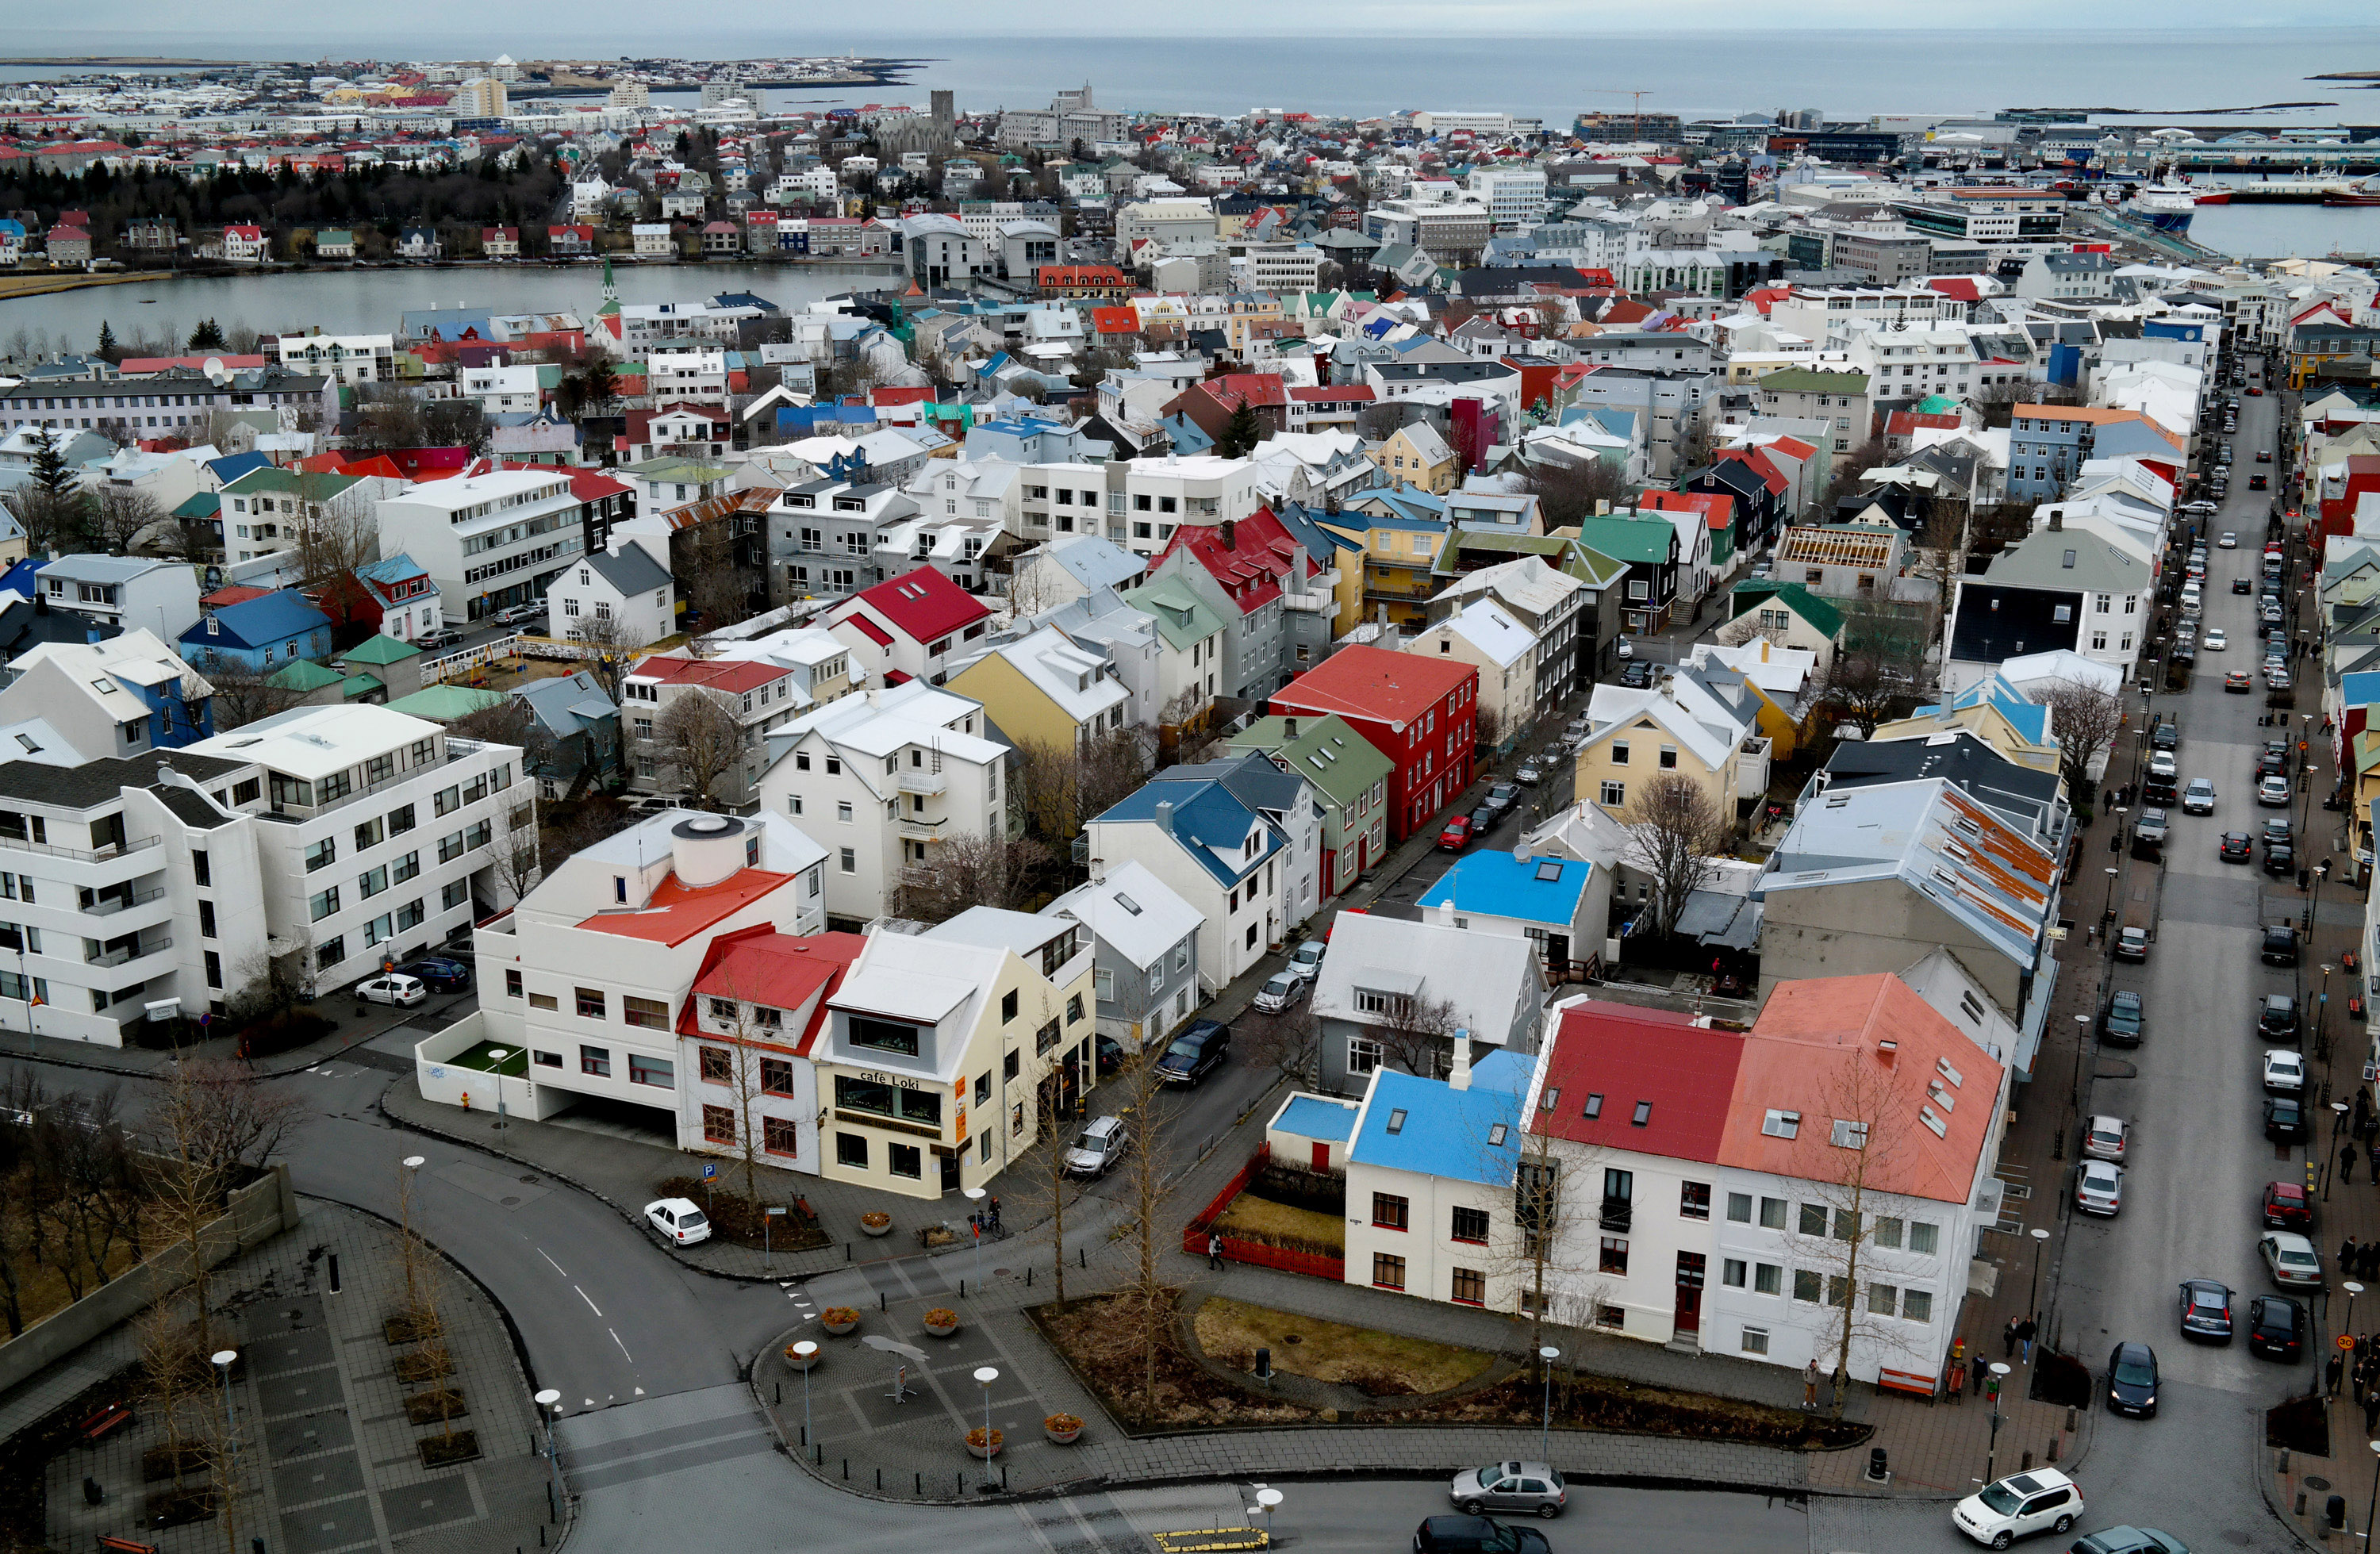 Iceland revises COVID-19 border screening rules for citizens, residents